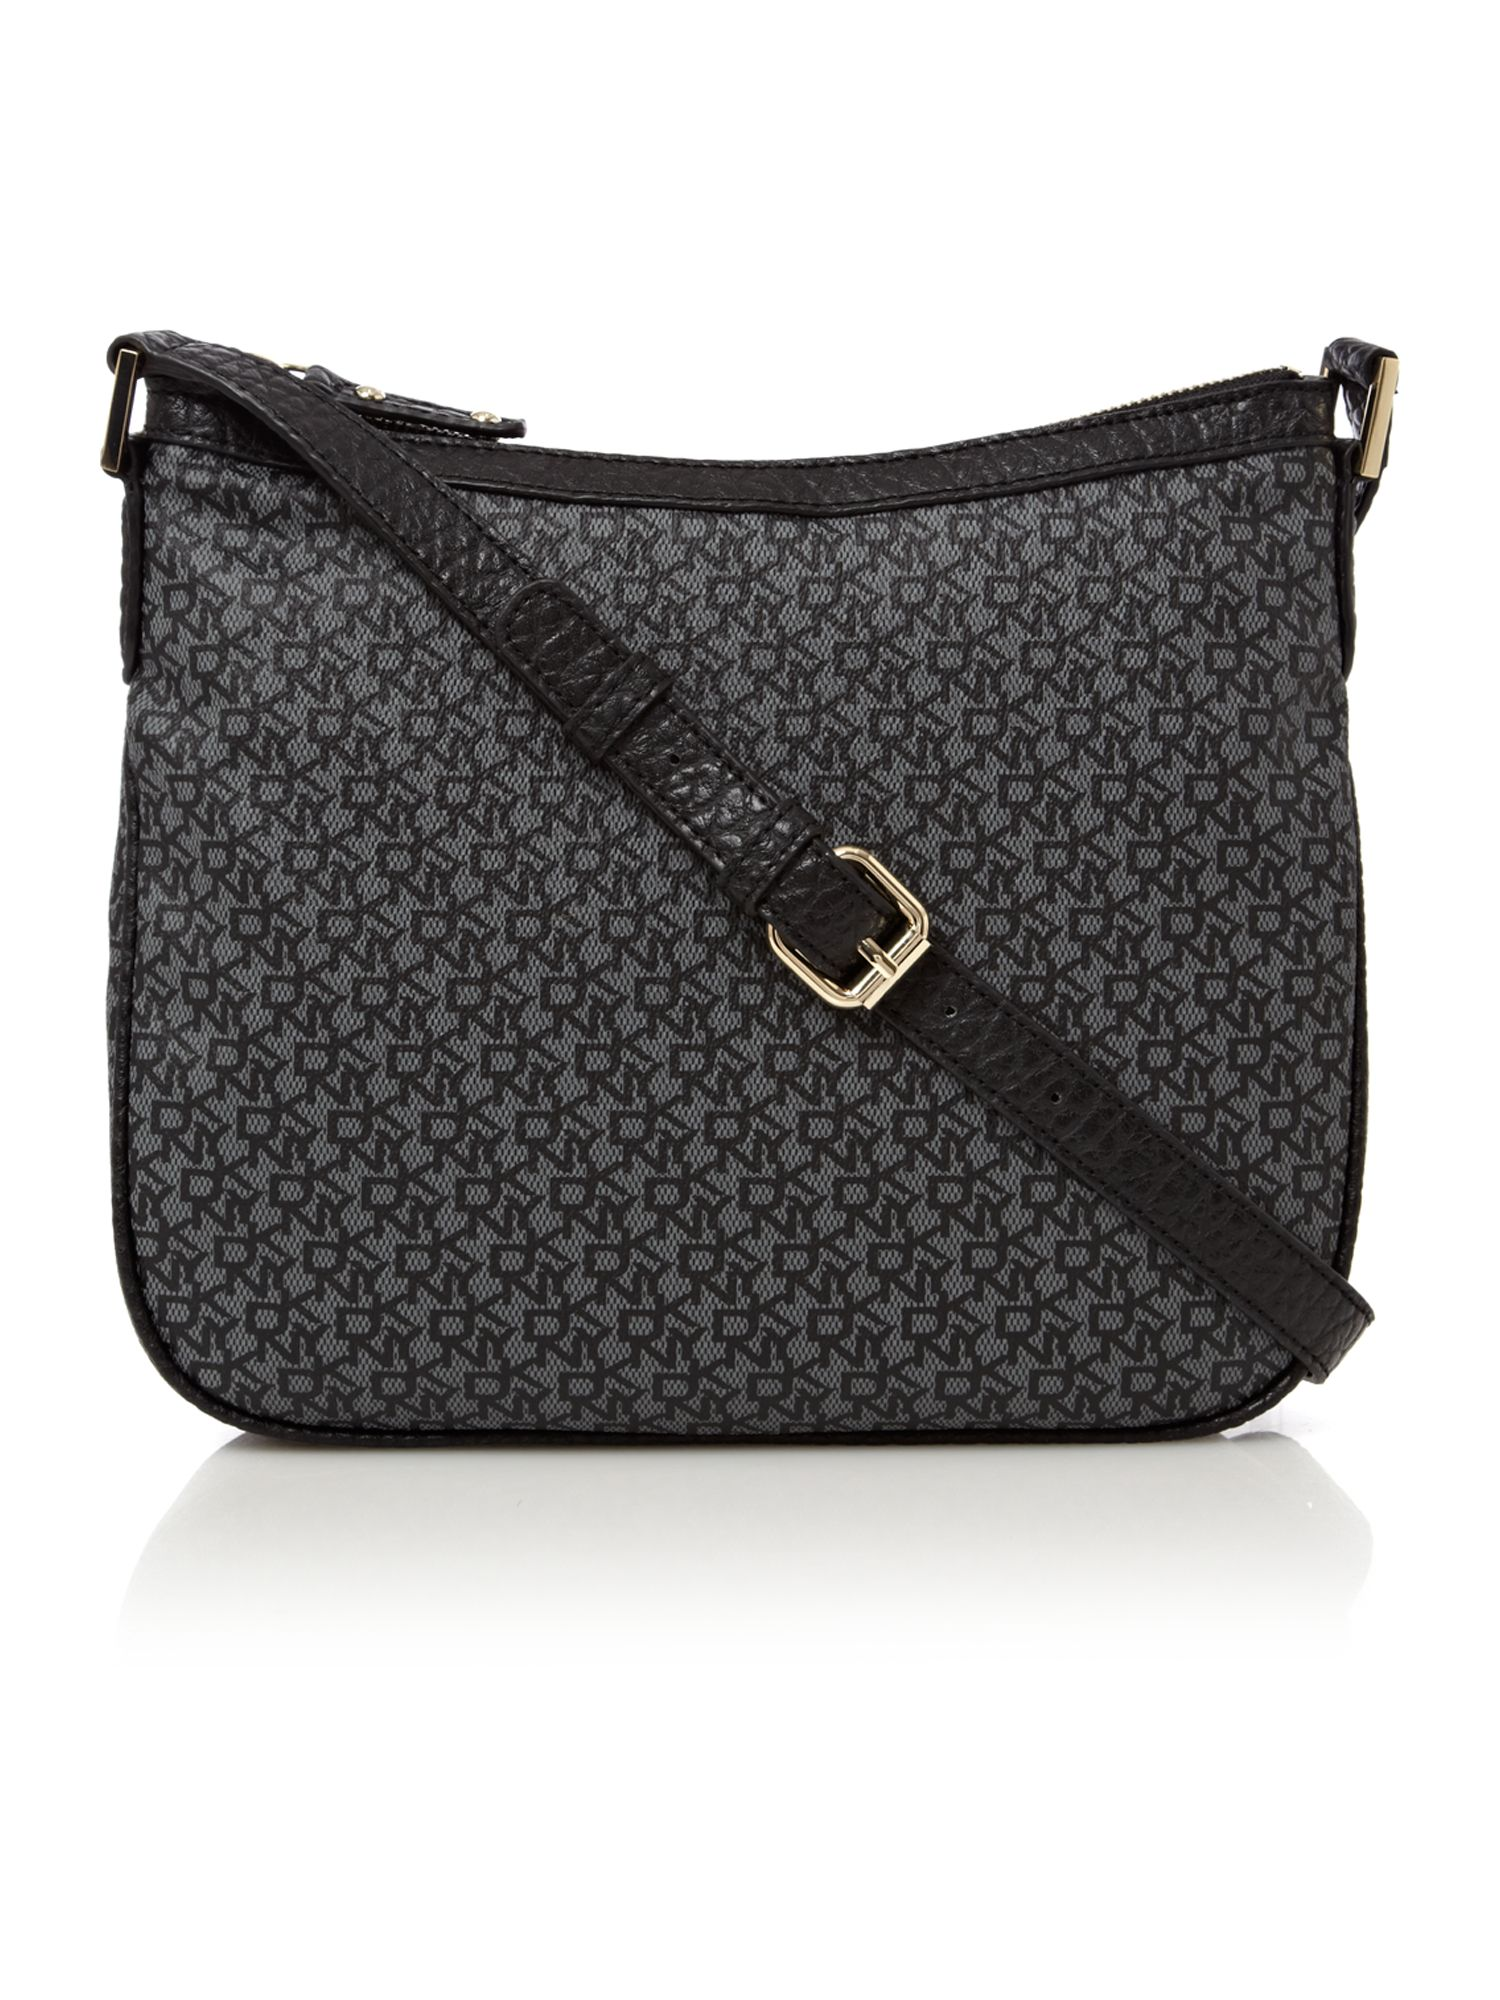 dkny coated logo crossbody bag in black lyst